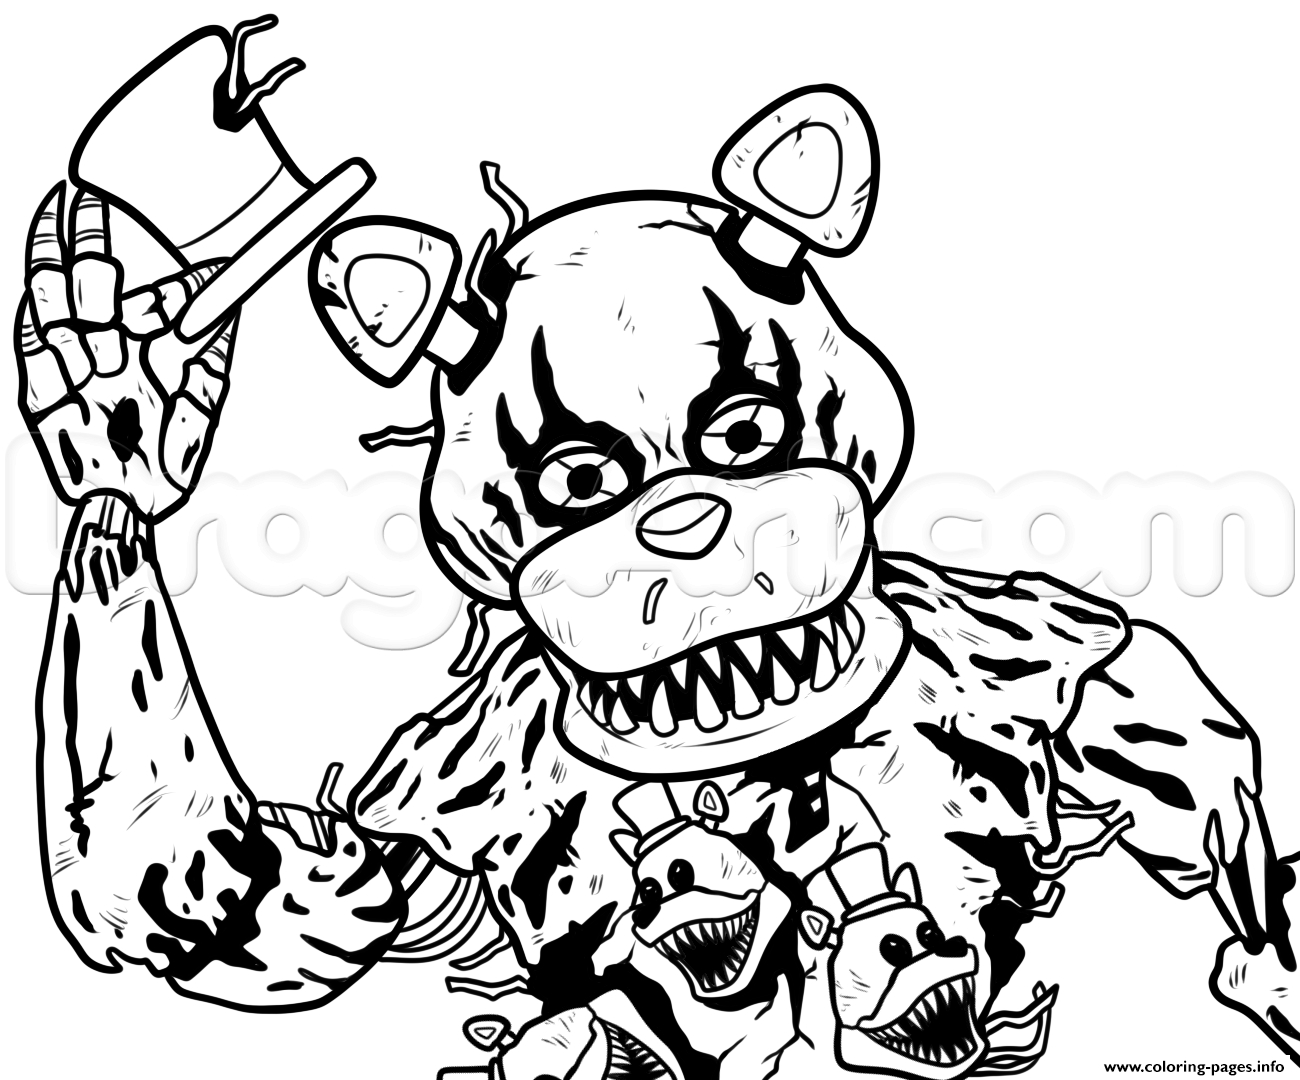 25 5 Nights at Freddy's Coloring Pages Pictures | FREE ...